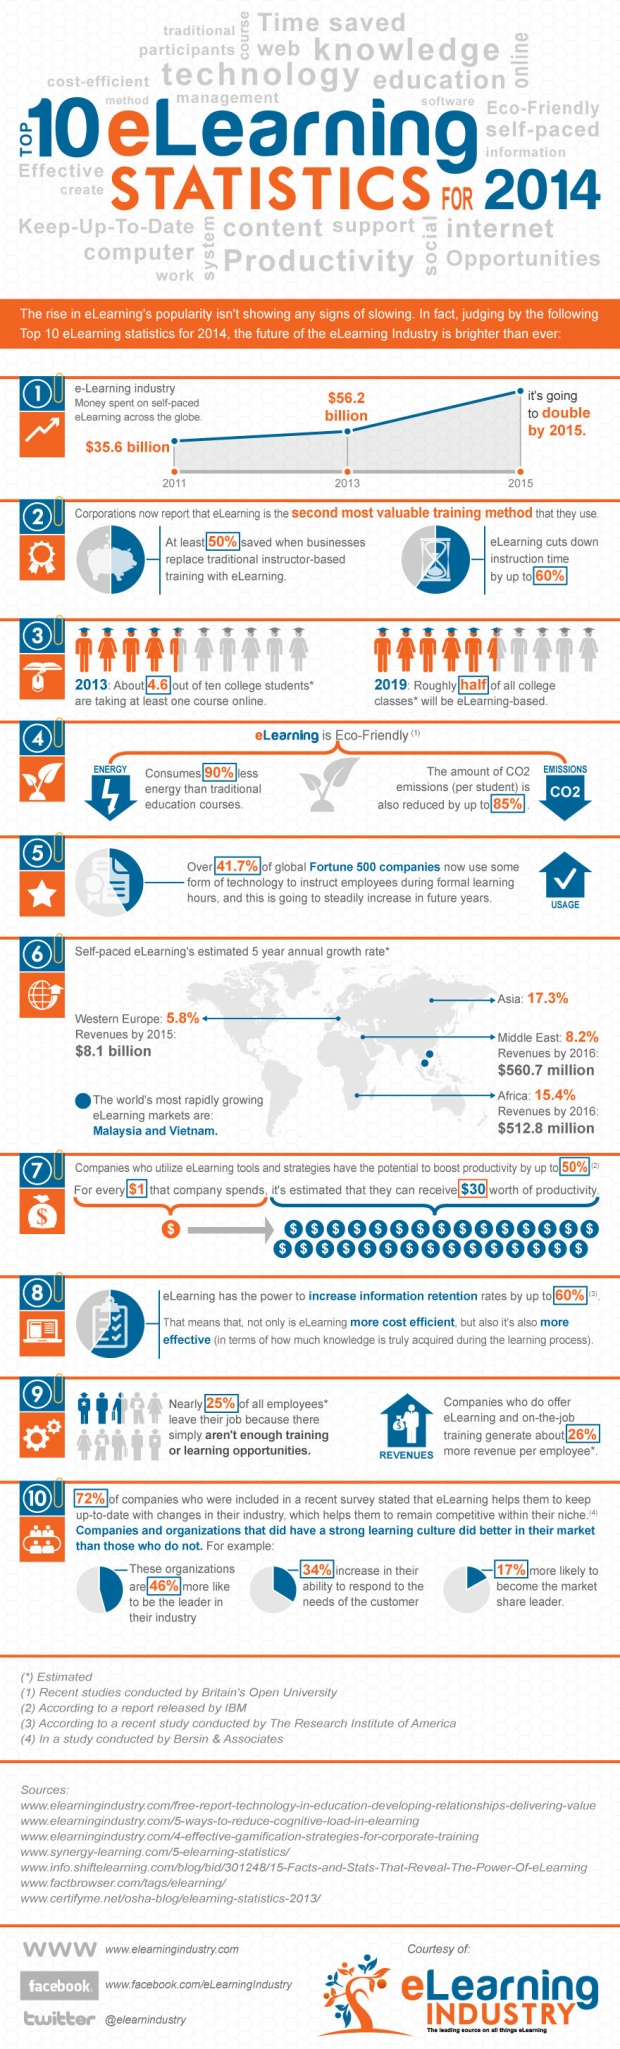 Top-10-eLearning-Statistics-for-2014-Infographic-620x2049